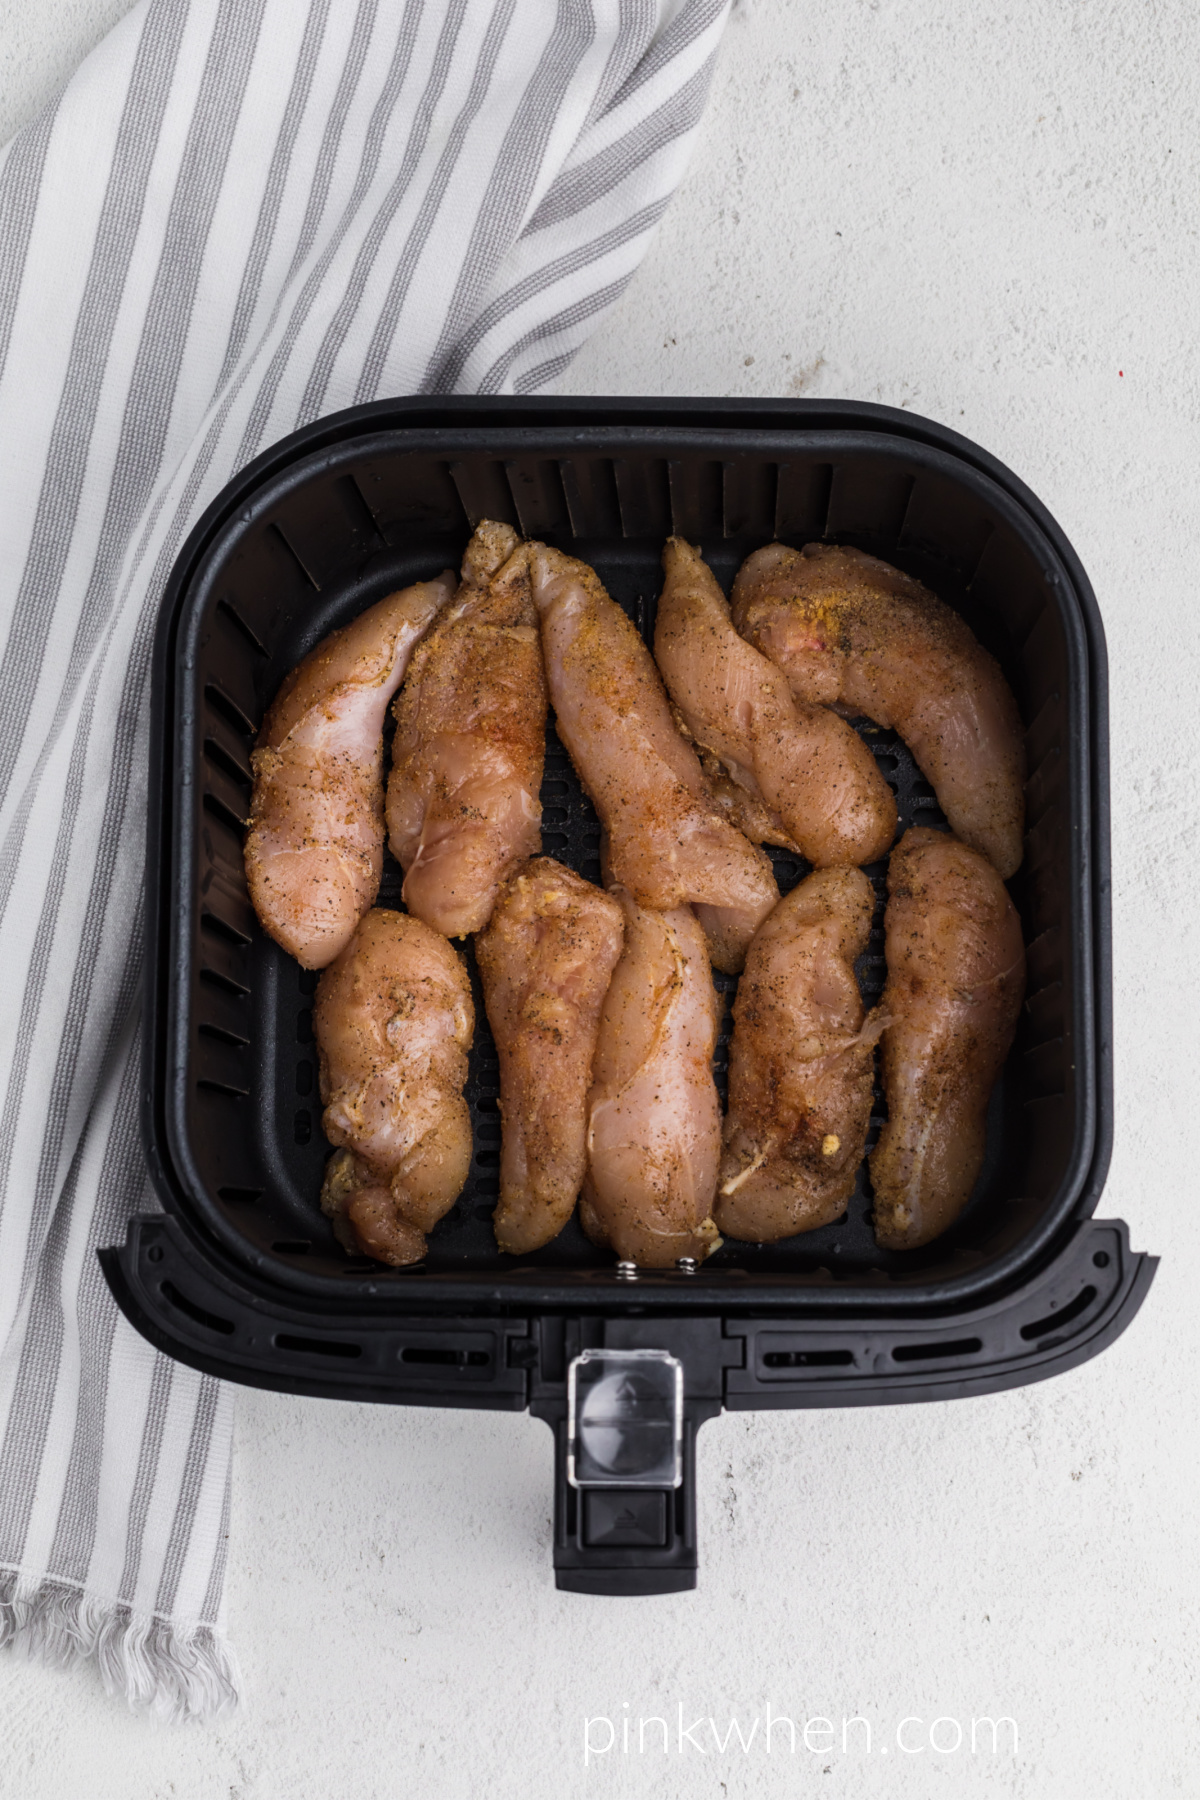 chicken tenders in the air fryer basket ready to be cooked.